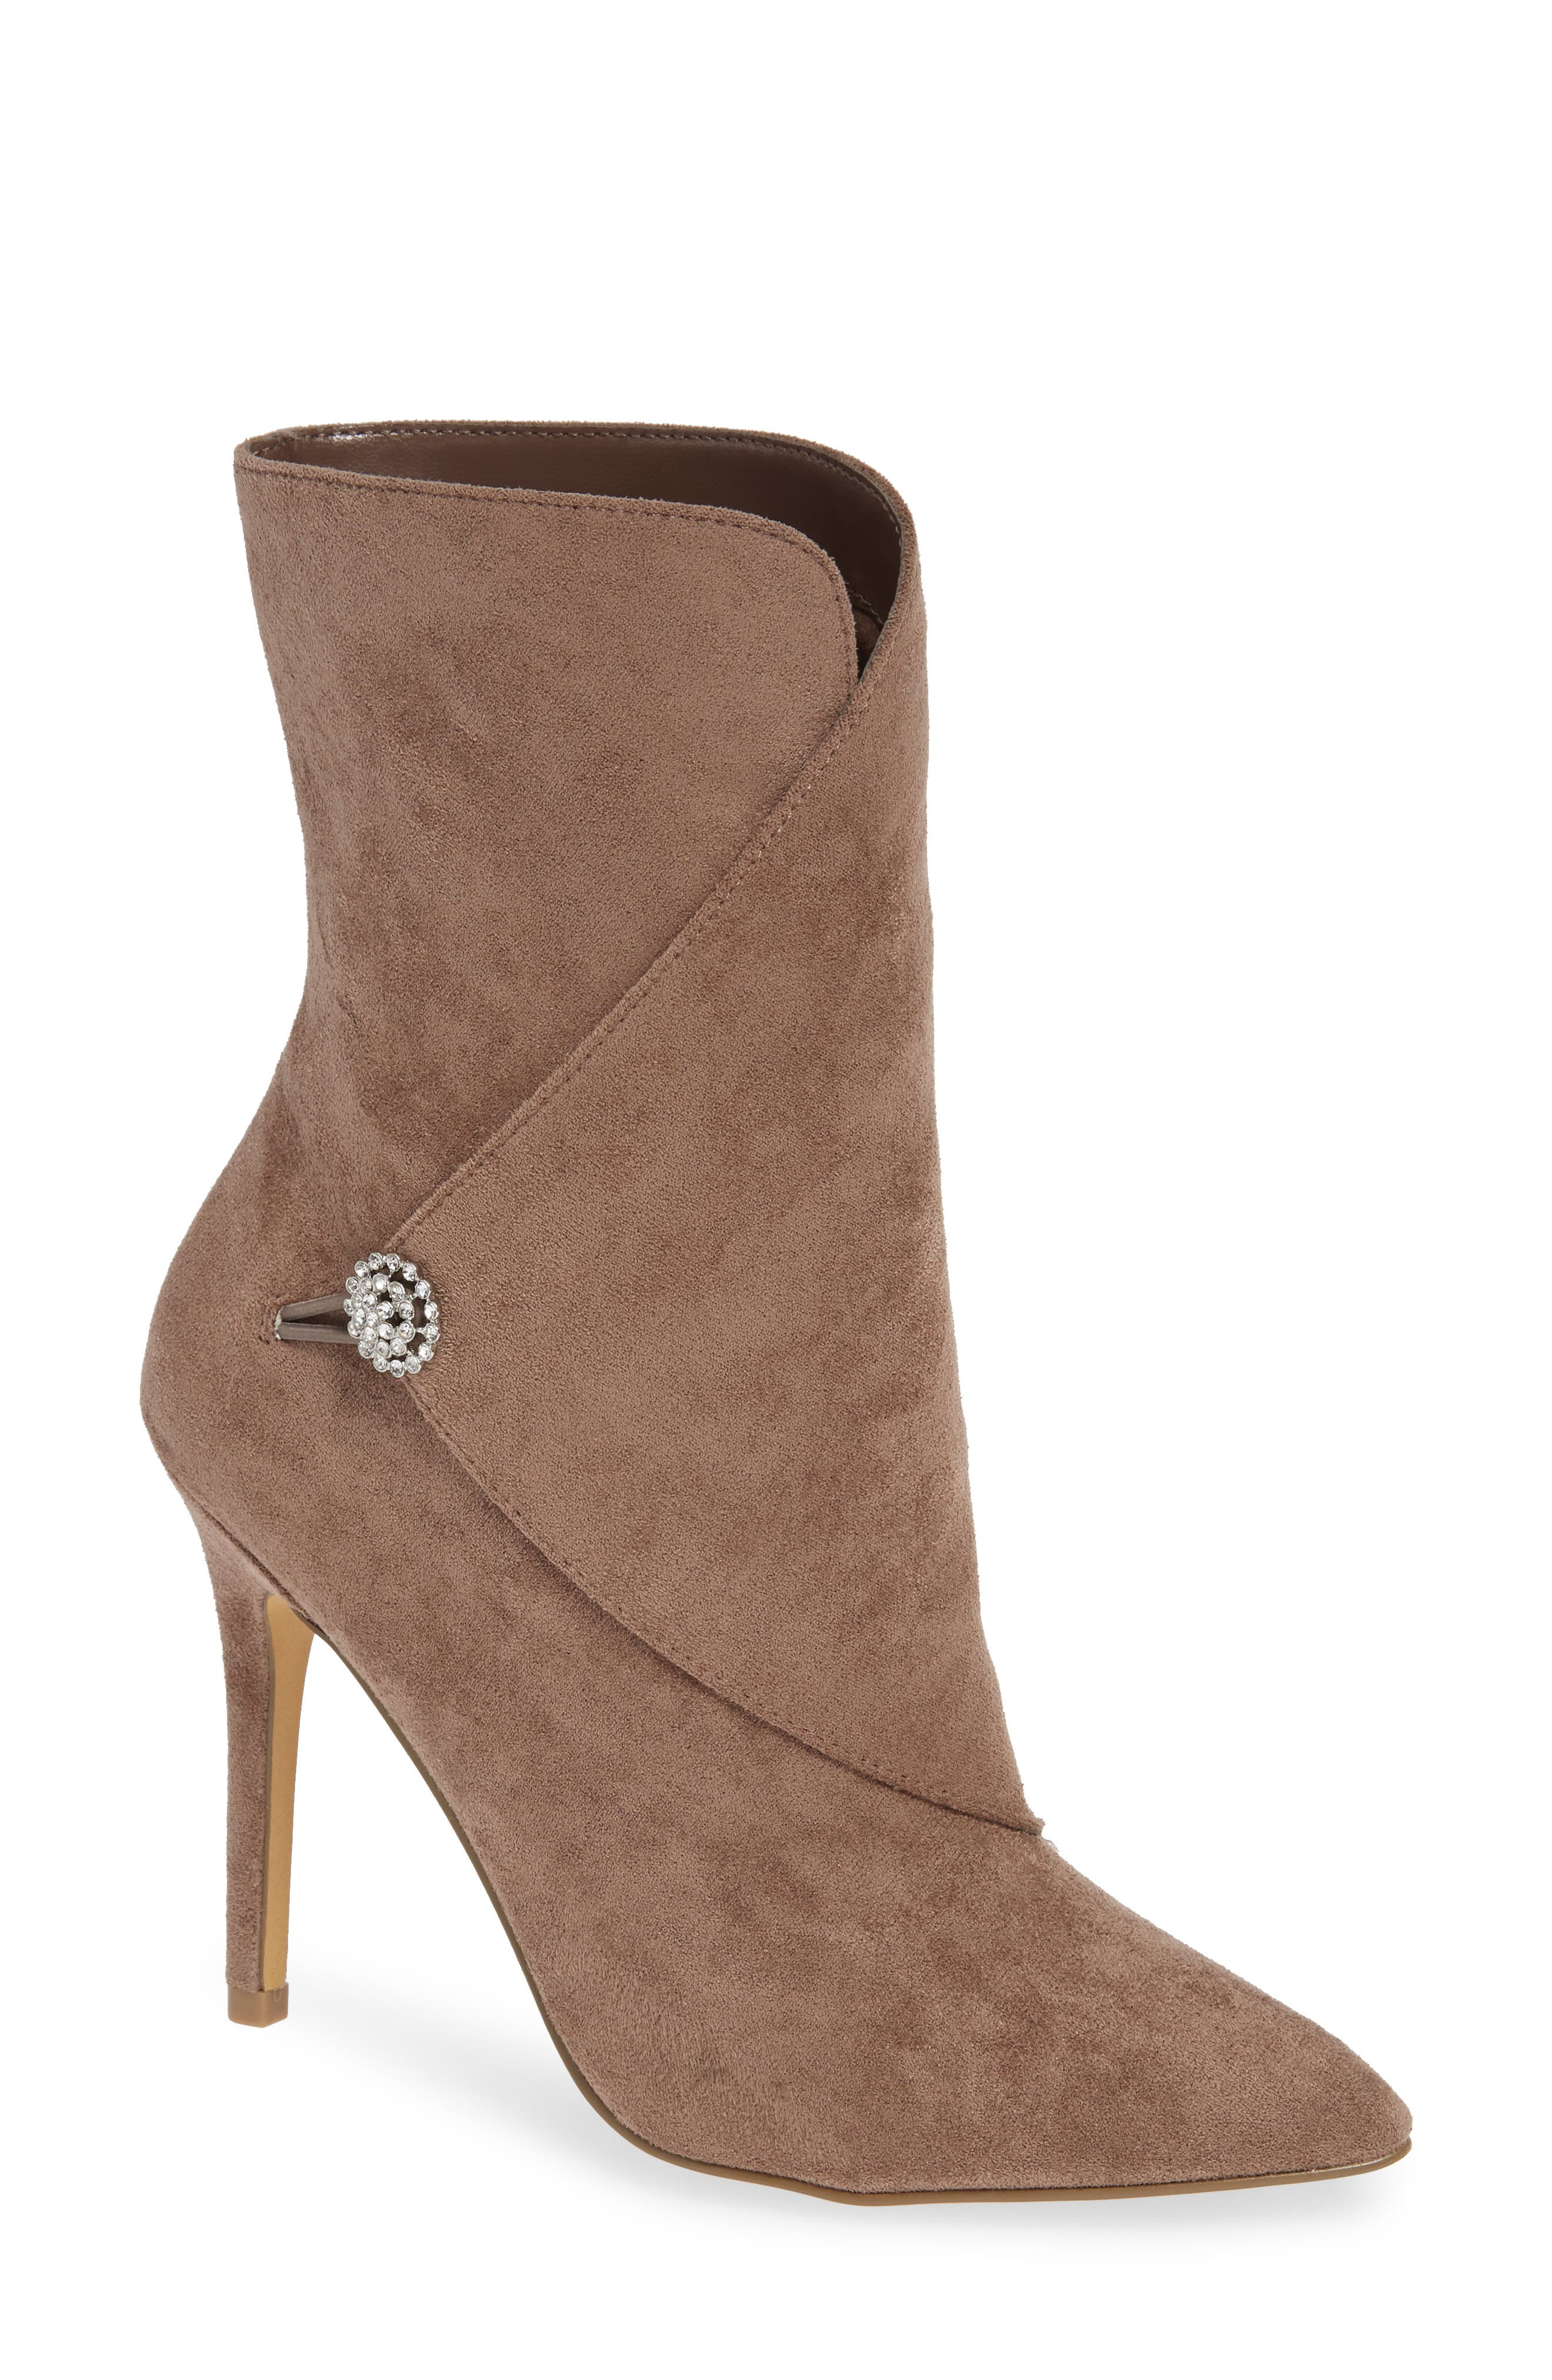 CHARLES BY CHARLES DAVID, Pistol Crystal Embellished Pointy Toe Bootie, Main thumbnail 1, color, TAUPE SUEDE